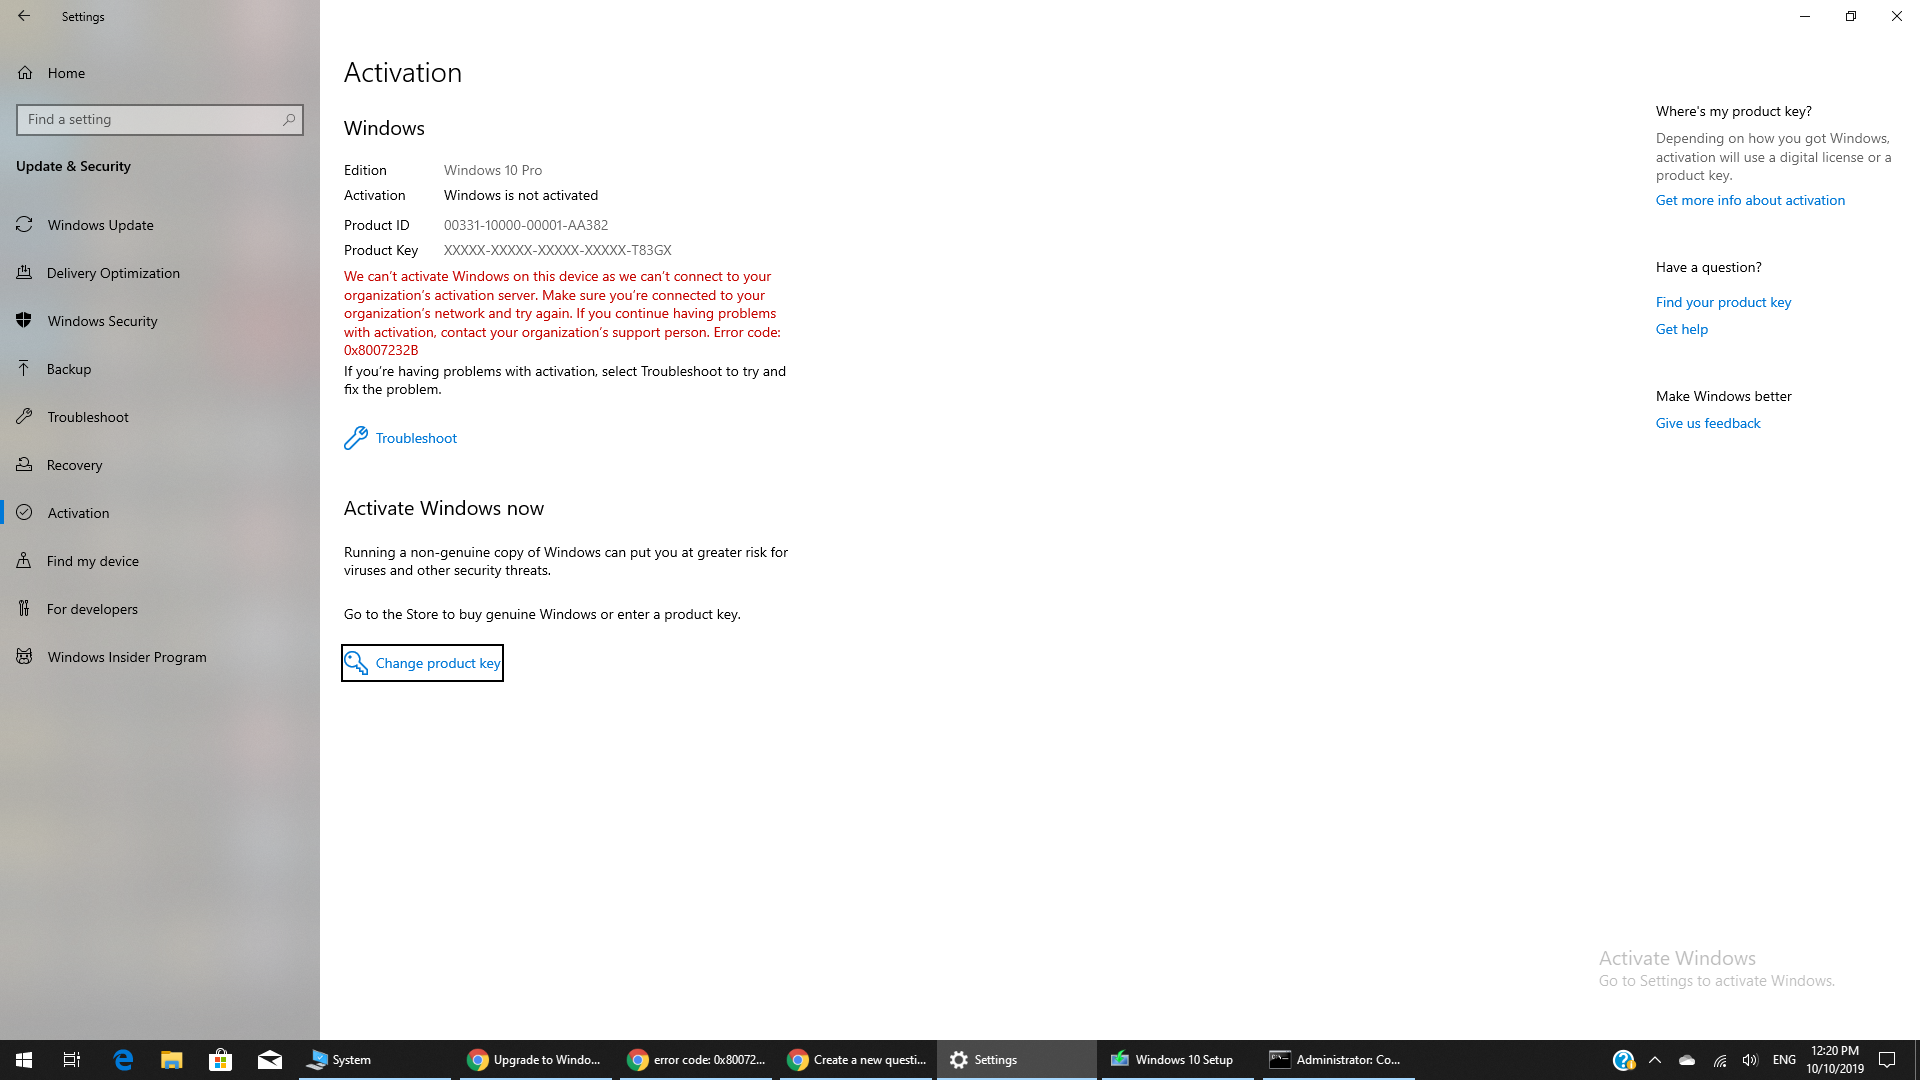 I Have used windows recovery  and reinstall  windows 10 after recover using recovery now  I... afb5afe3-e174-4842-8cc7-67bd2a8ccfc7?upload=true.png